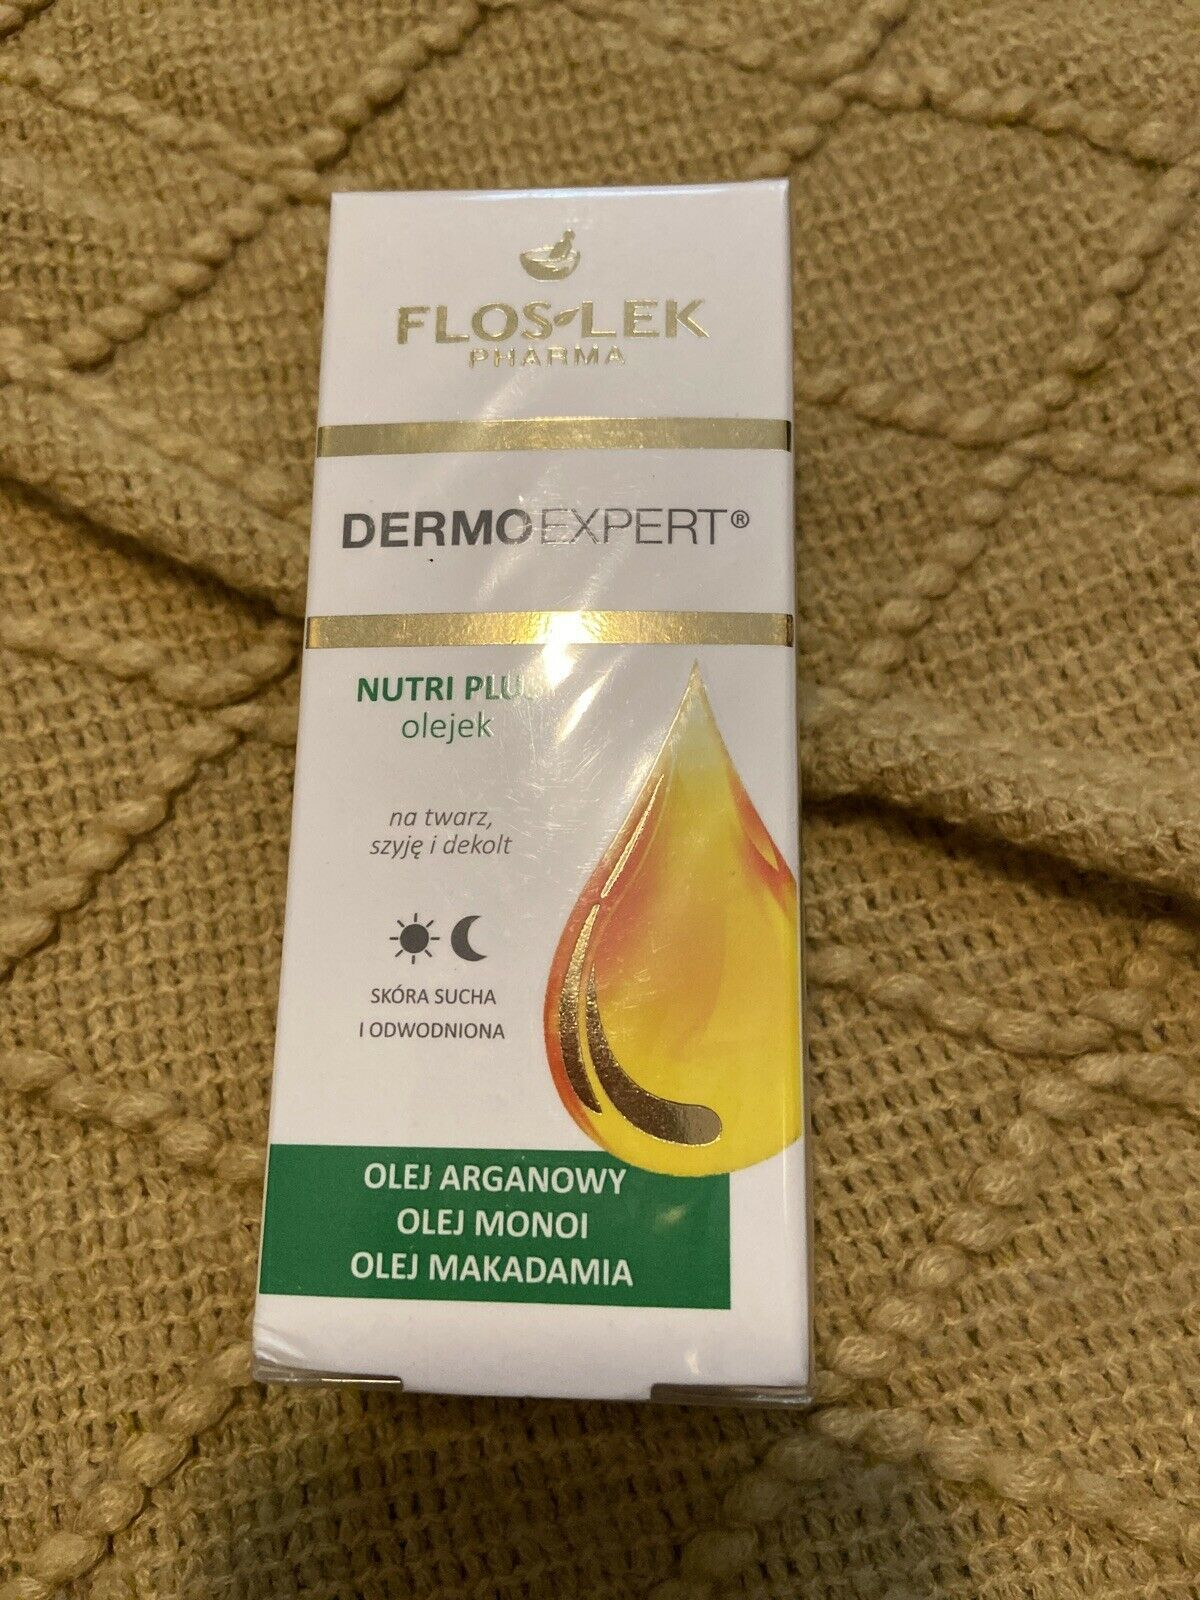 Primary image for Flos-Lek Dermo ExpertNatural oil Face Serums (Nutri Plus Oil)